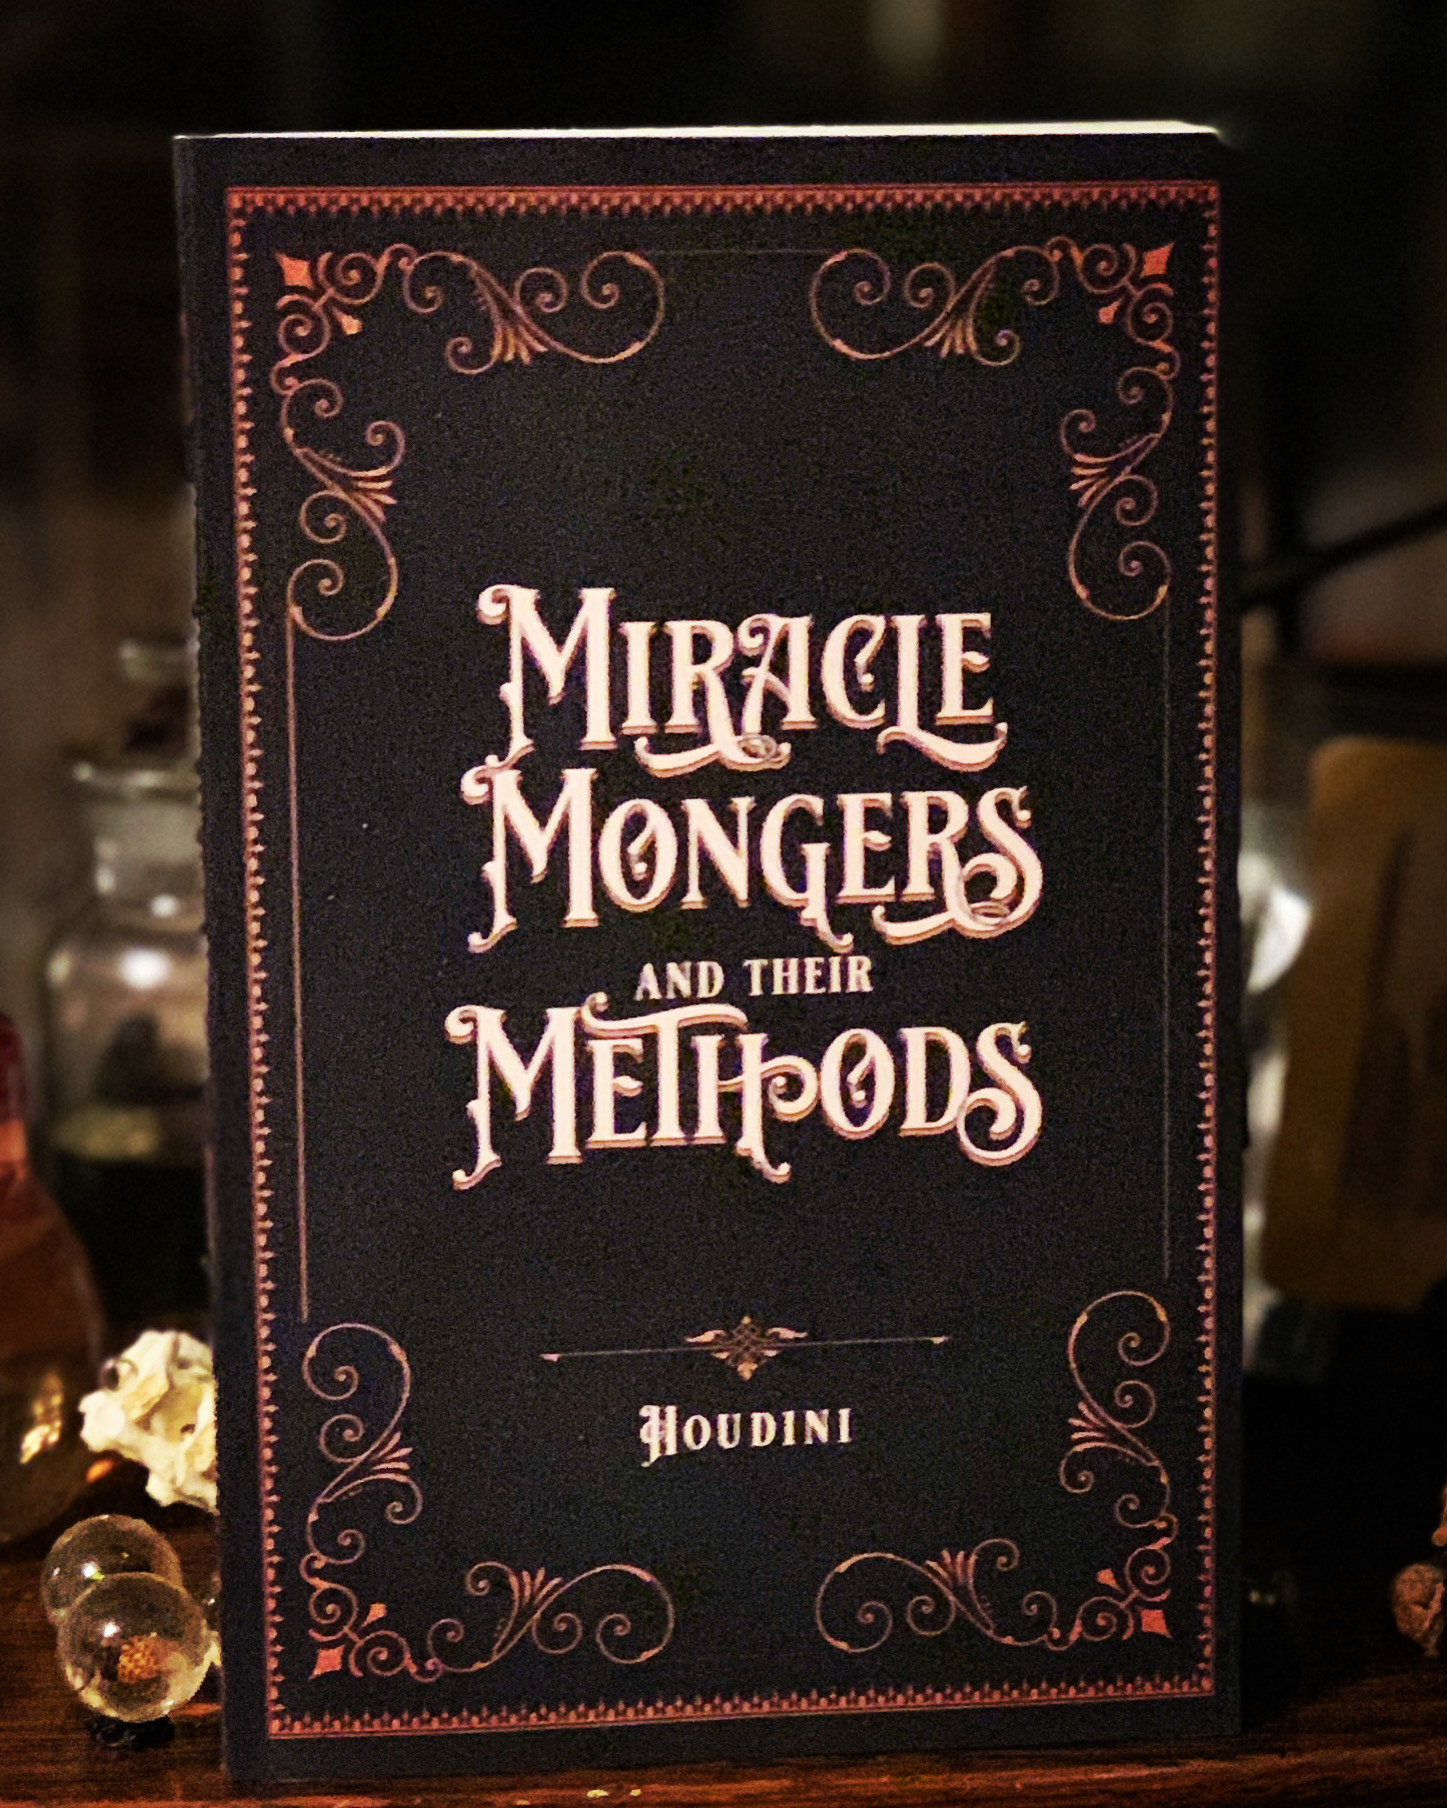 Miracle Mongers and Their Methods, by Houdini